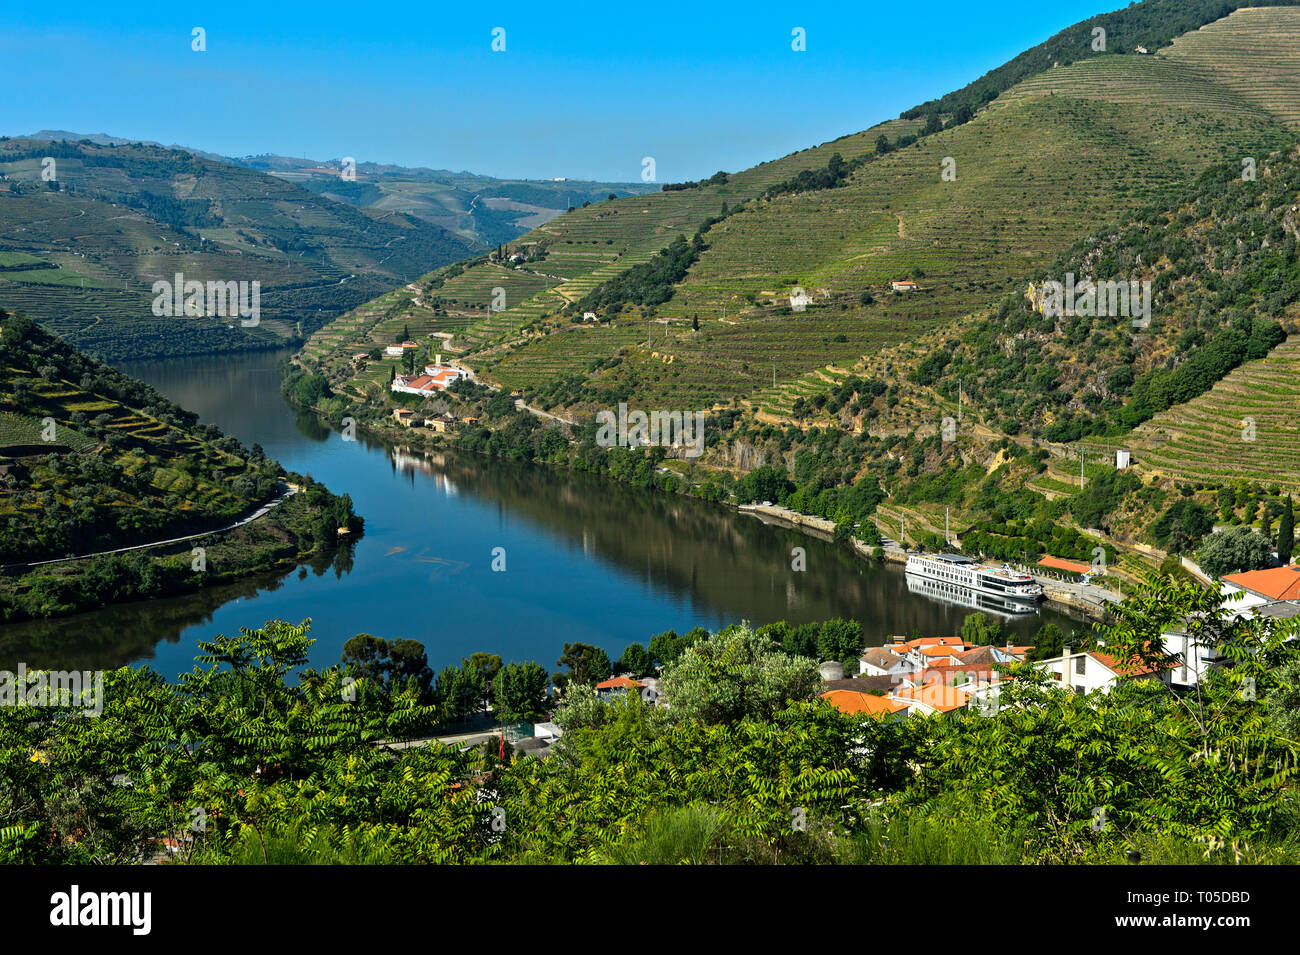 Meandering Douro River near Pinhao, Douro Valley, Portugal - Stock Image